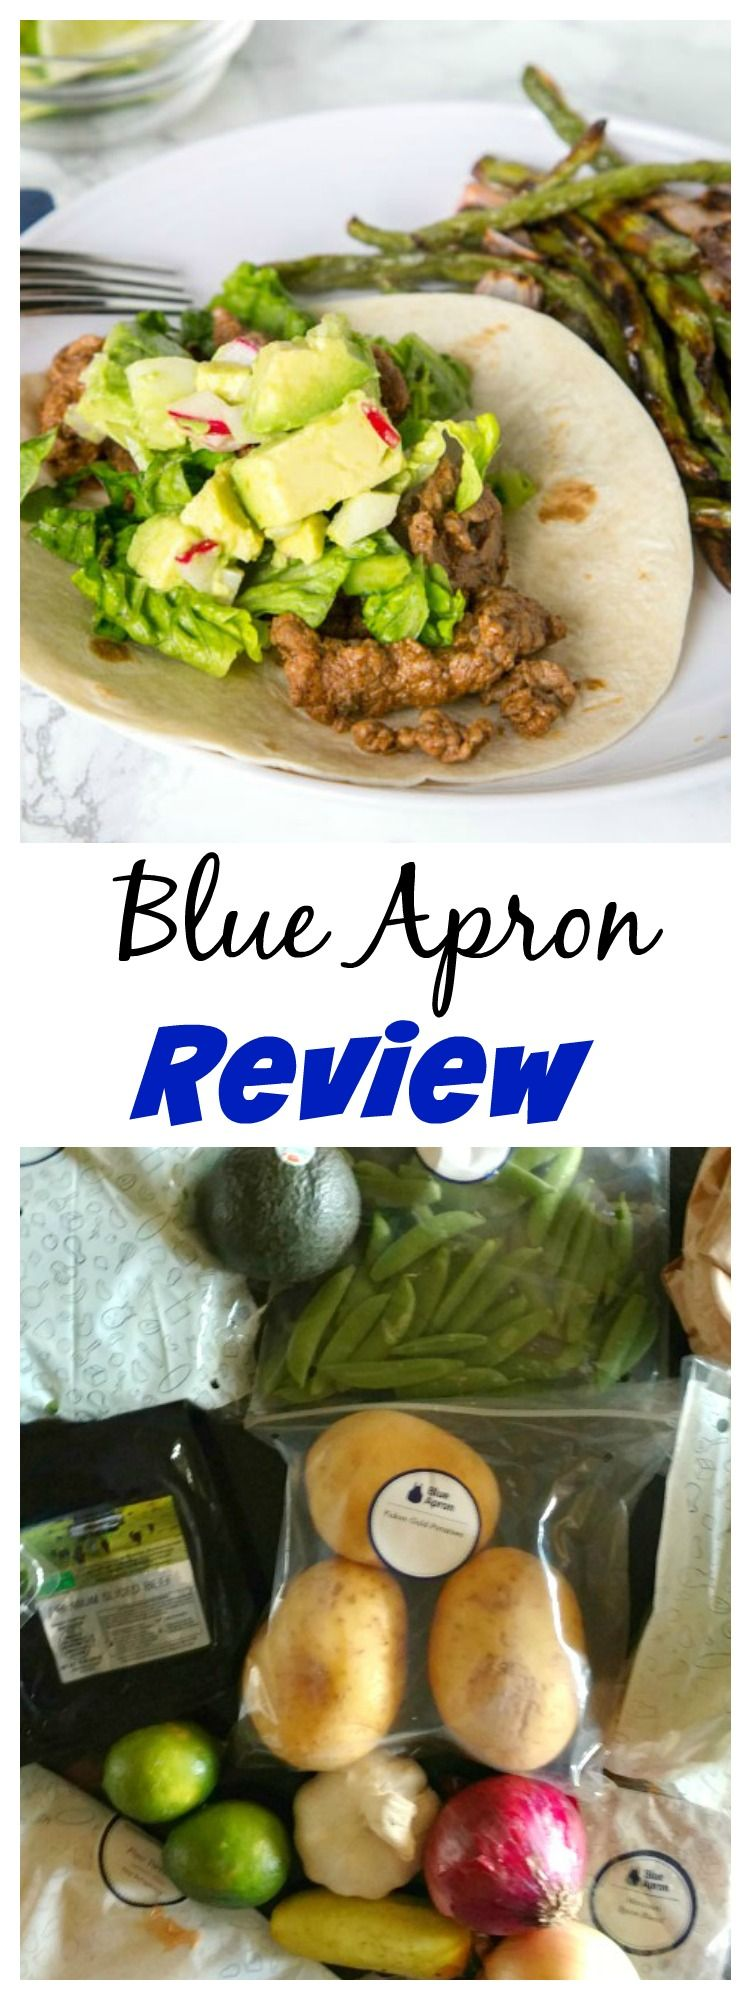 An Honest Review Of Blue Apron Meal Delivery Service. How